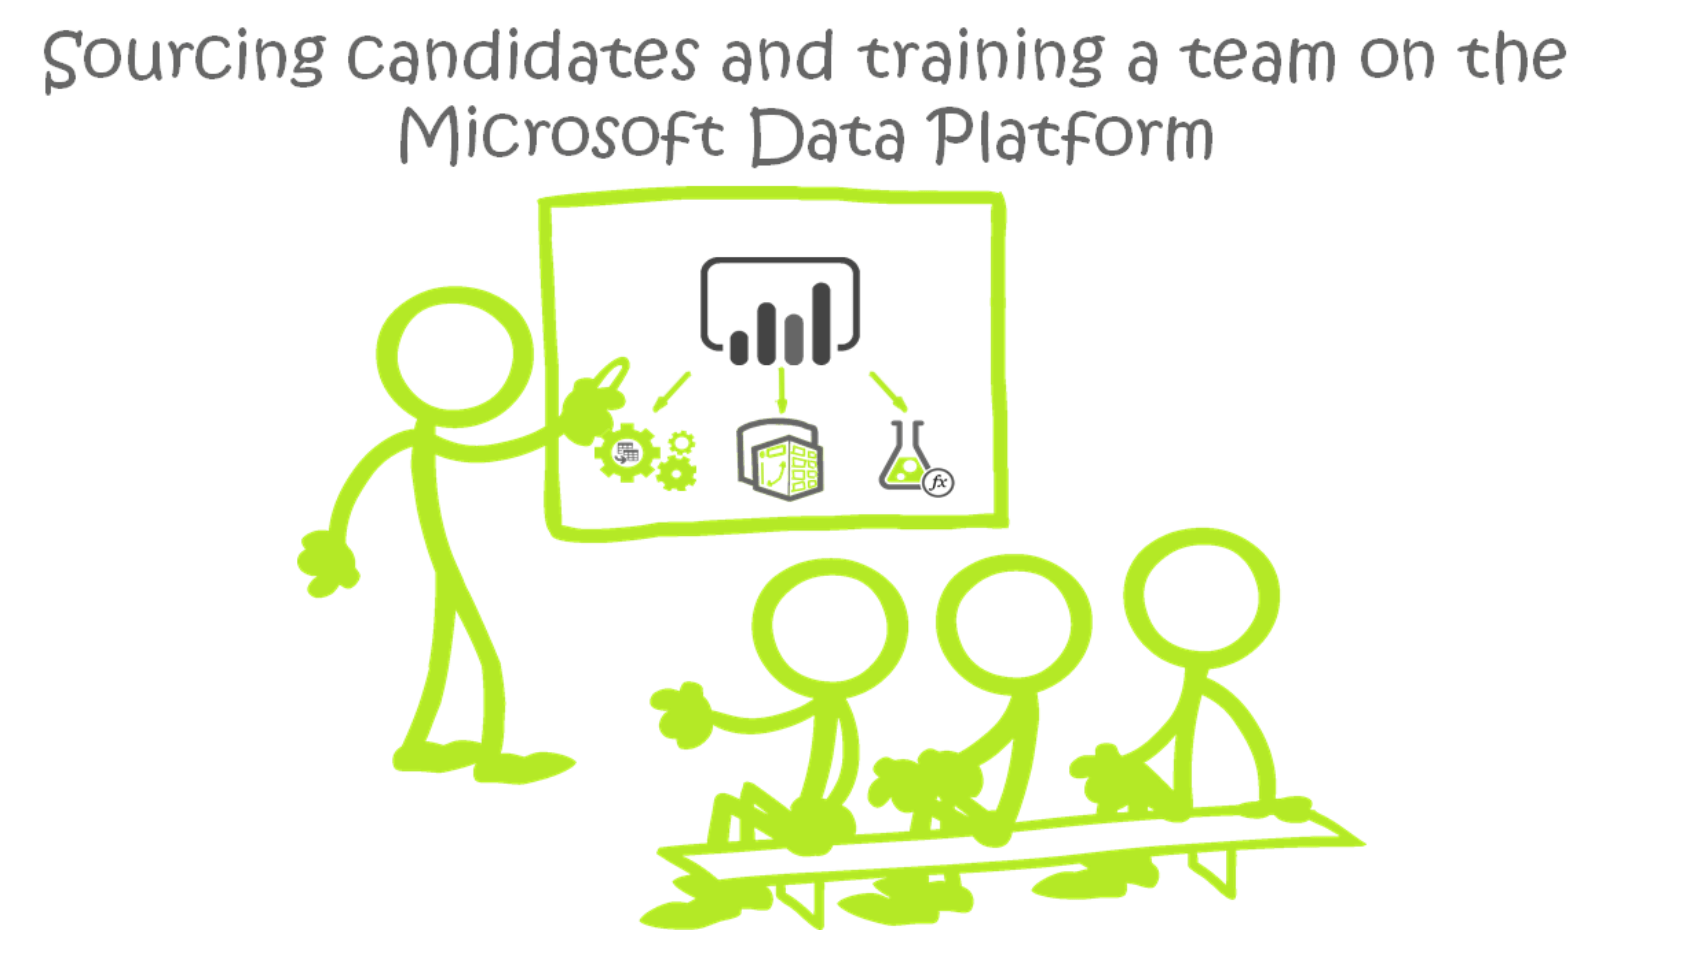 Sourcing candidates and training a team on the Microsoft Data